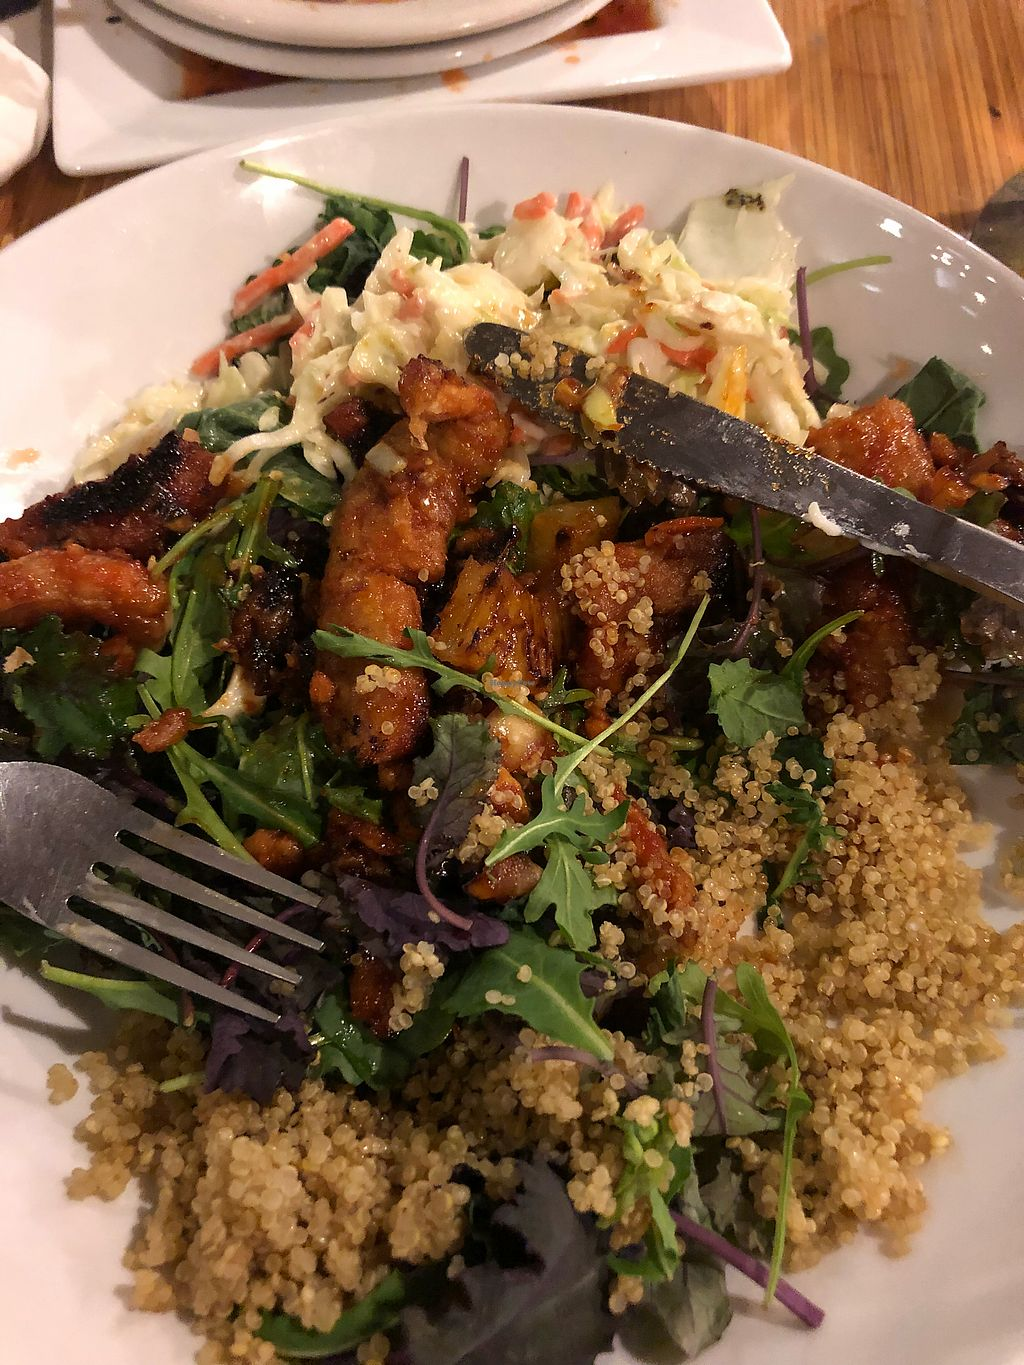 """Photo of Pig Minds Brewing  by <a href=""""/members/profile/kines.training"""">kines.training</a> <br/>Barbecue Porky Bowl <br/> January 21, 2018  - <a href='/contact/abuse/image/32686/349100'>Report</a>"""